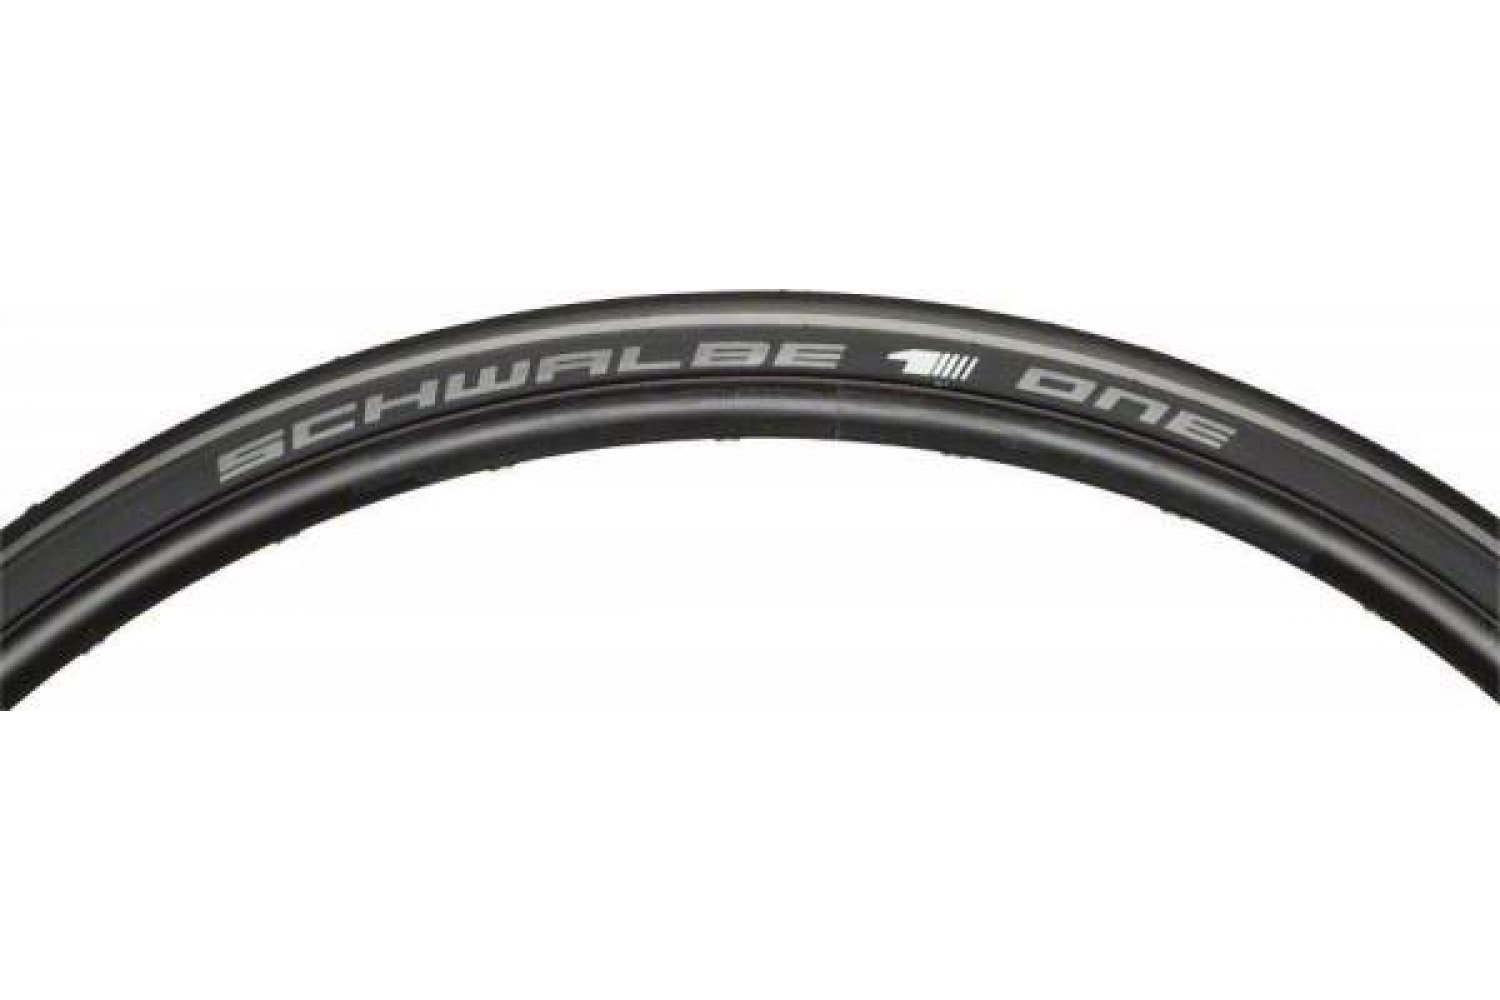 Schwalbe Buitenband One | Vouwband | 23-622